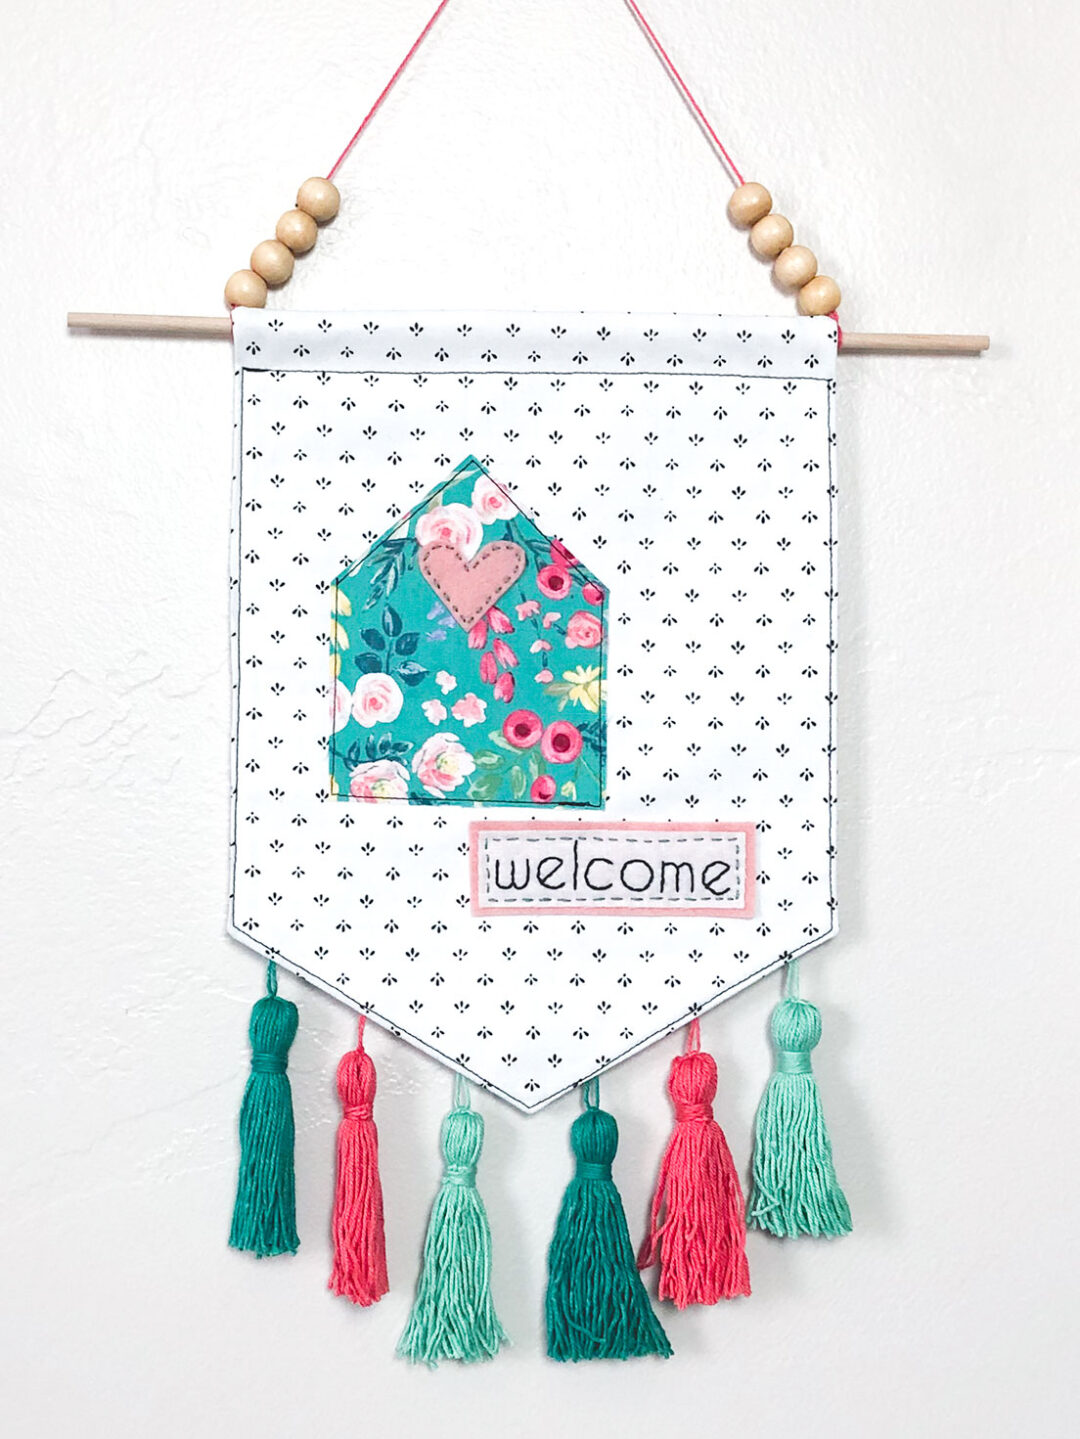 Welcome Wall Banner DIY by top US sewing blog Ameroonie Designs: image shows the finished welcome banner with floral cottage and embellishments